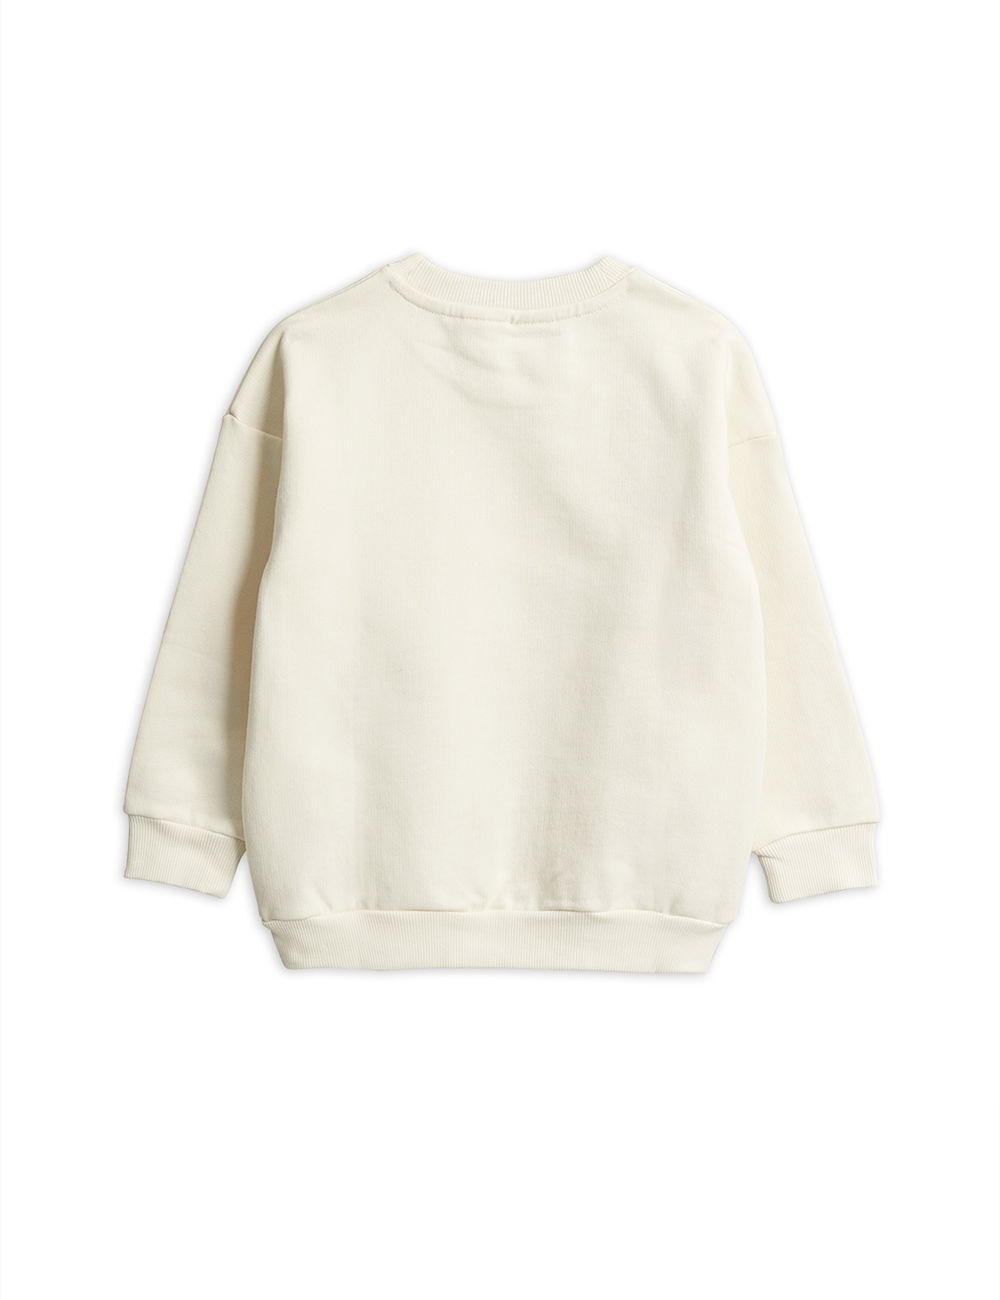 MINI RODINI POP CORN SWEATSHIRT, OFFWHITE